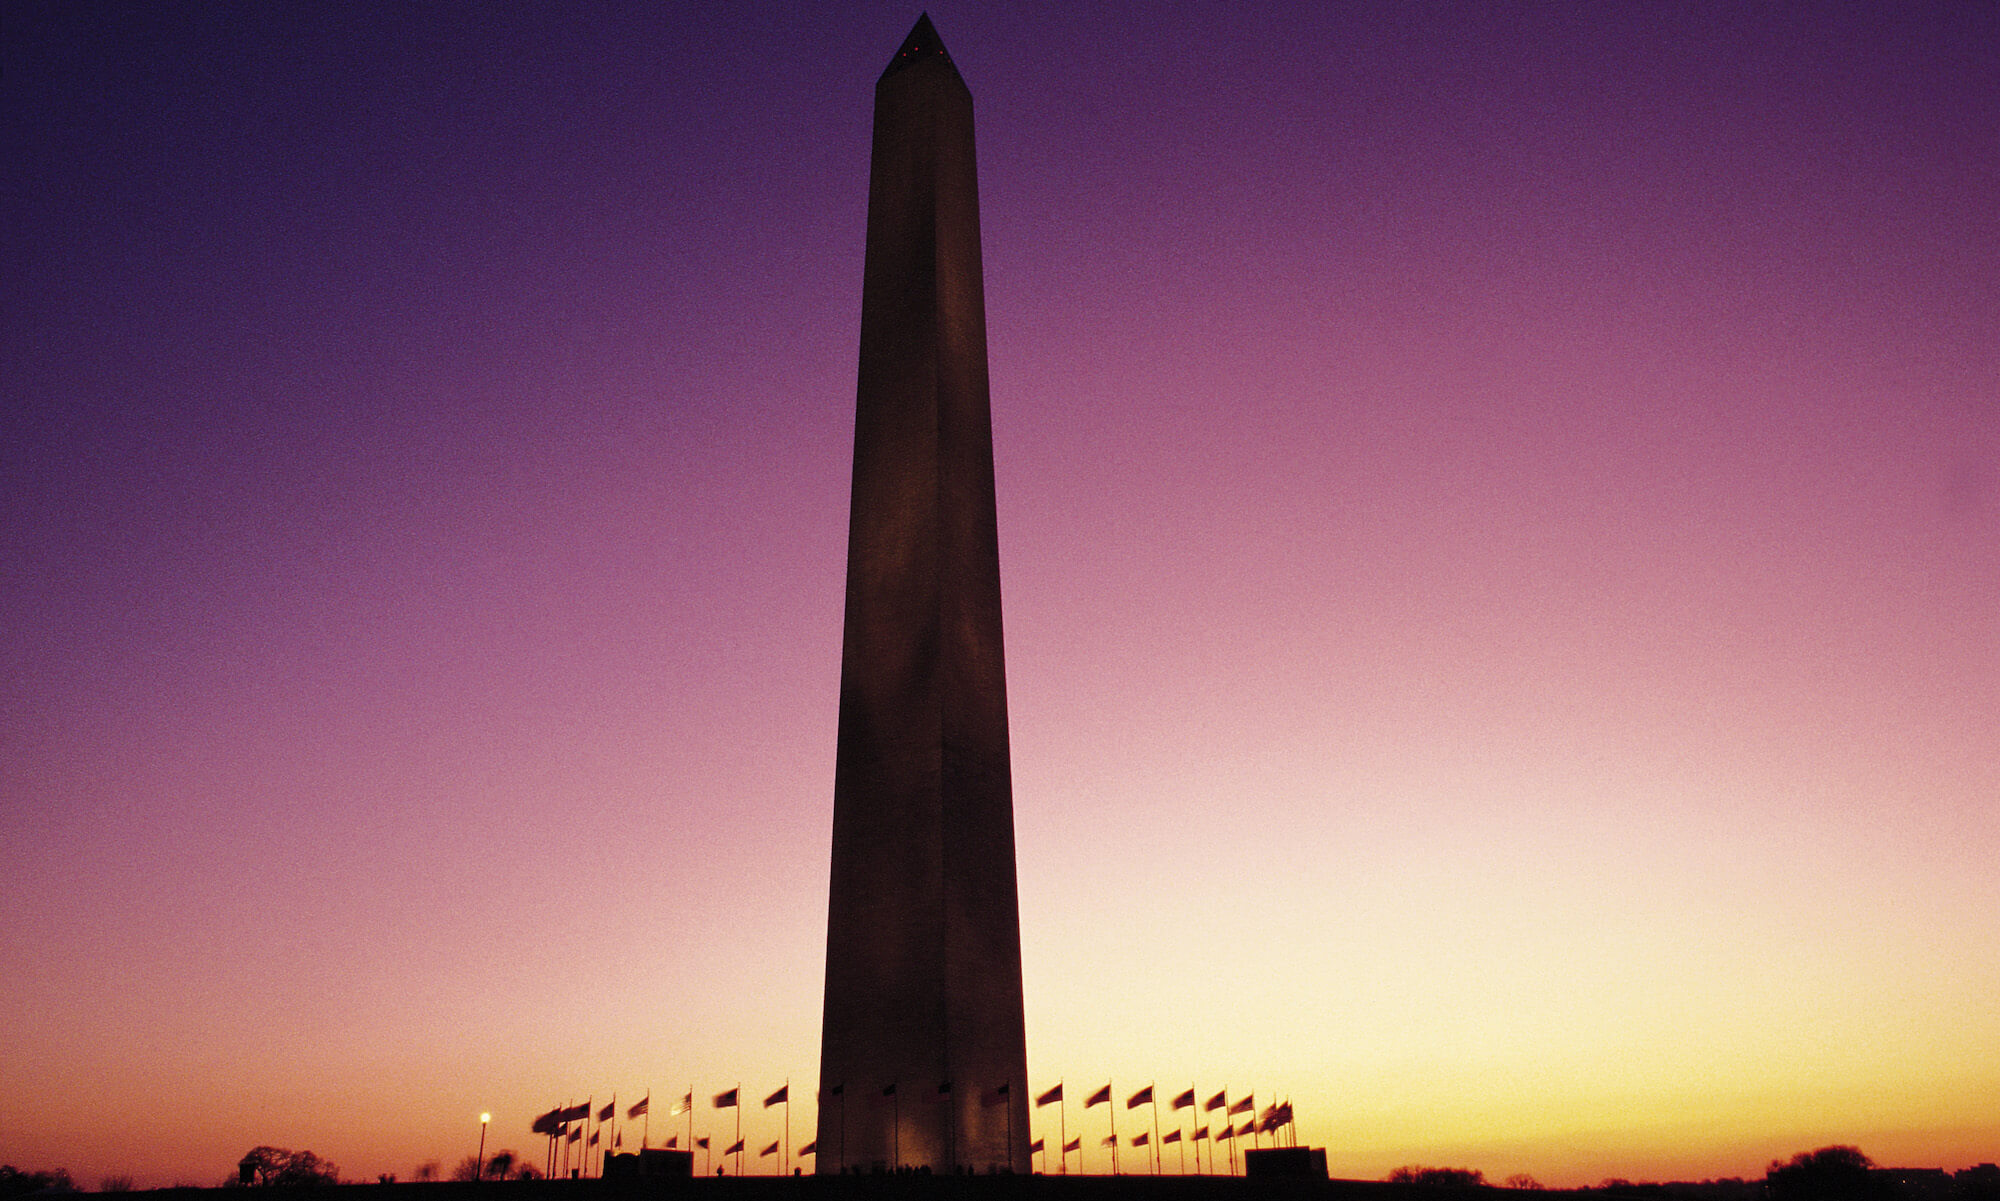 Washington Monument at sunset